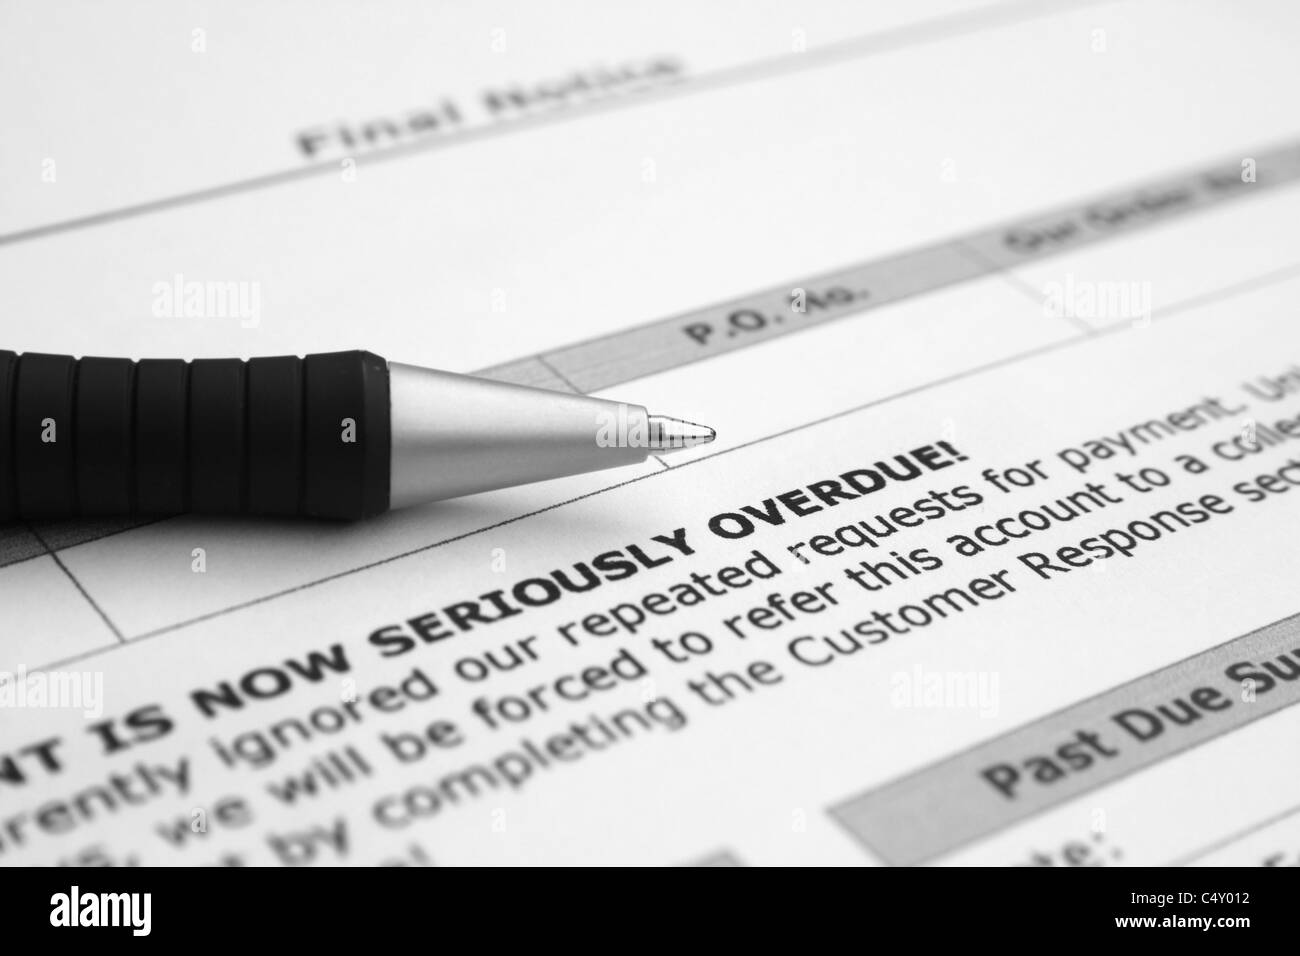 Overdue account - Stock Image